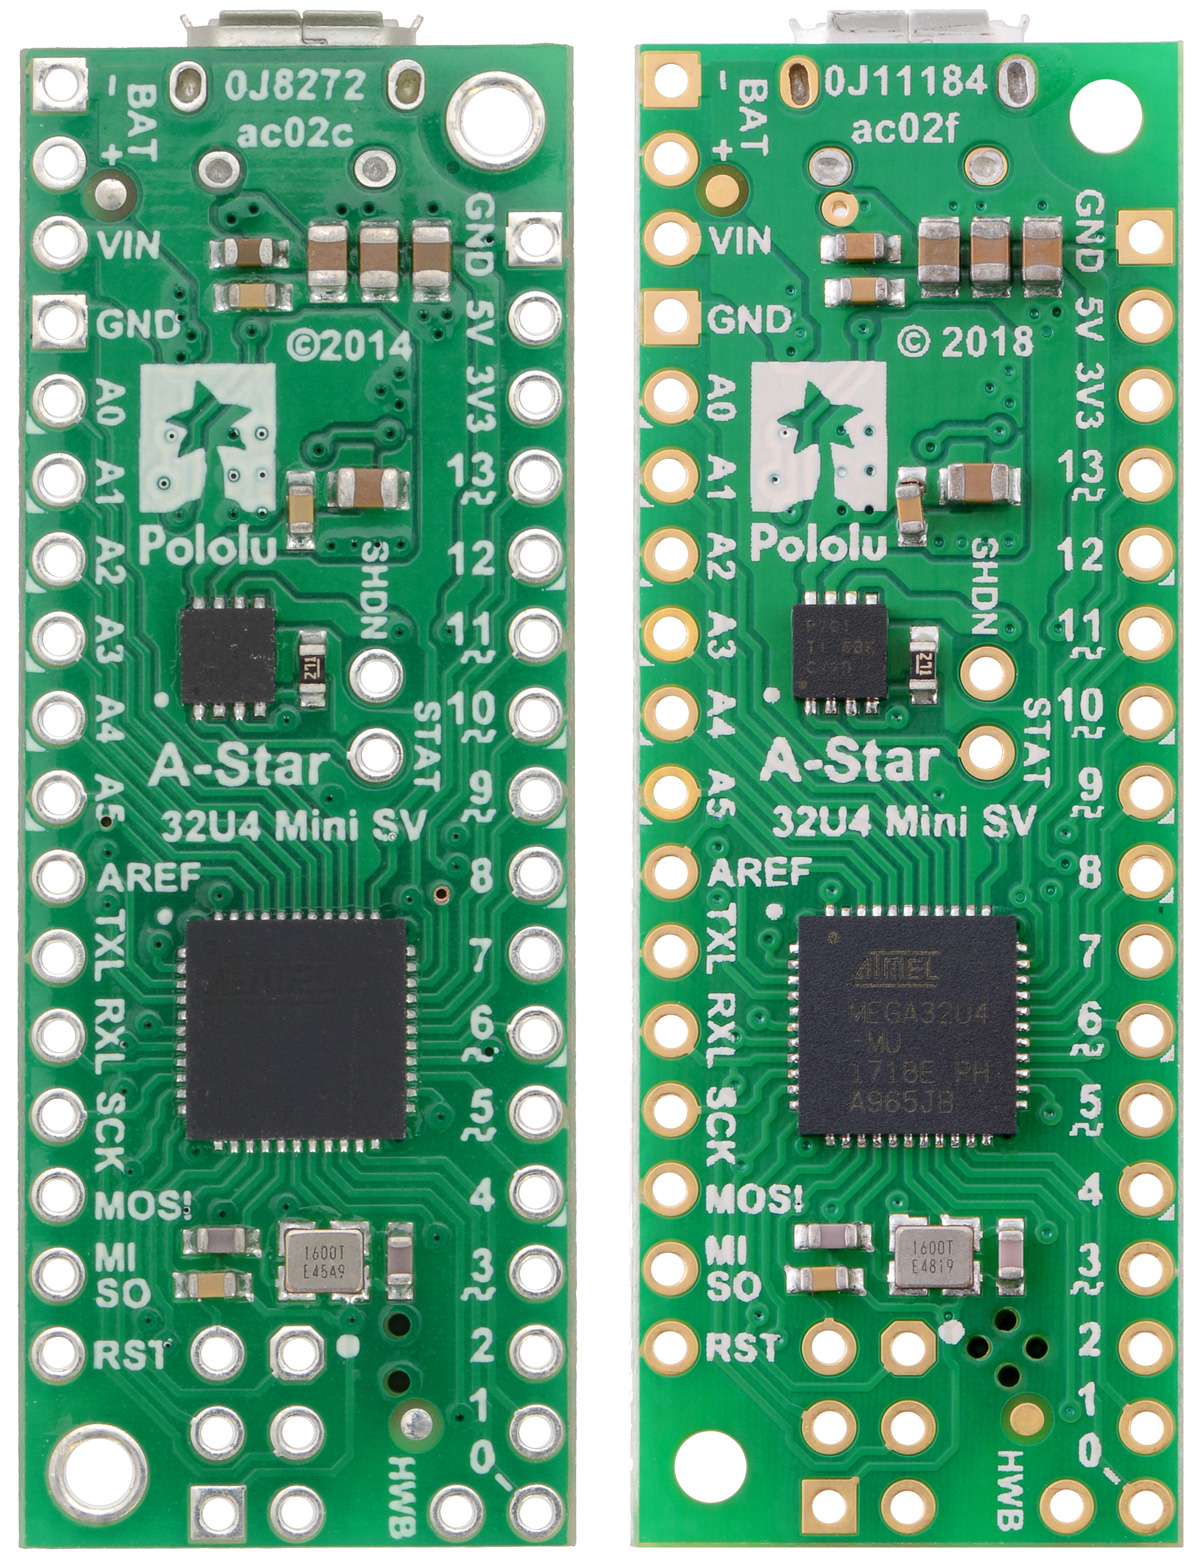 Pololu A Star 32u4 Users Guide Here Is The Functional Block Diagramof Usb Mcu Chip Mini Sv Comparison Of Original Ac02c Version Left To Newer Ac02f Right